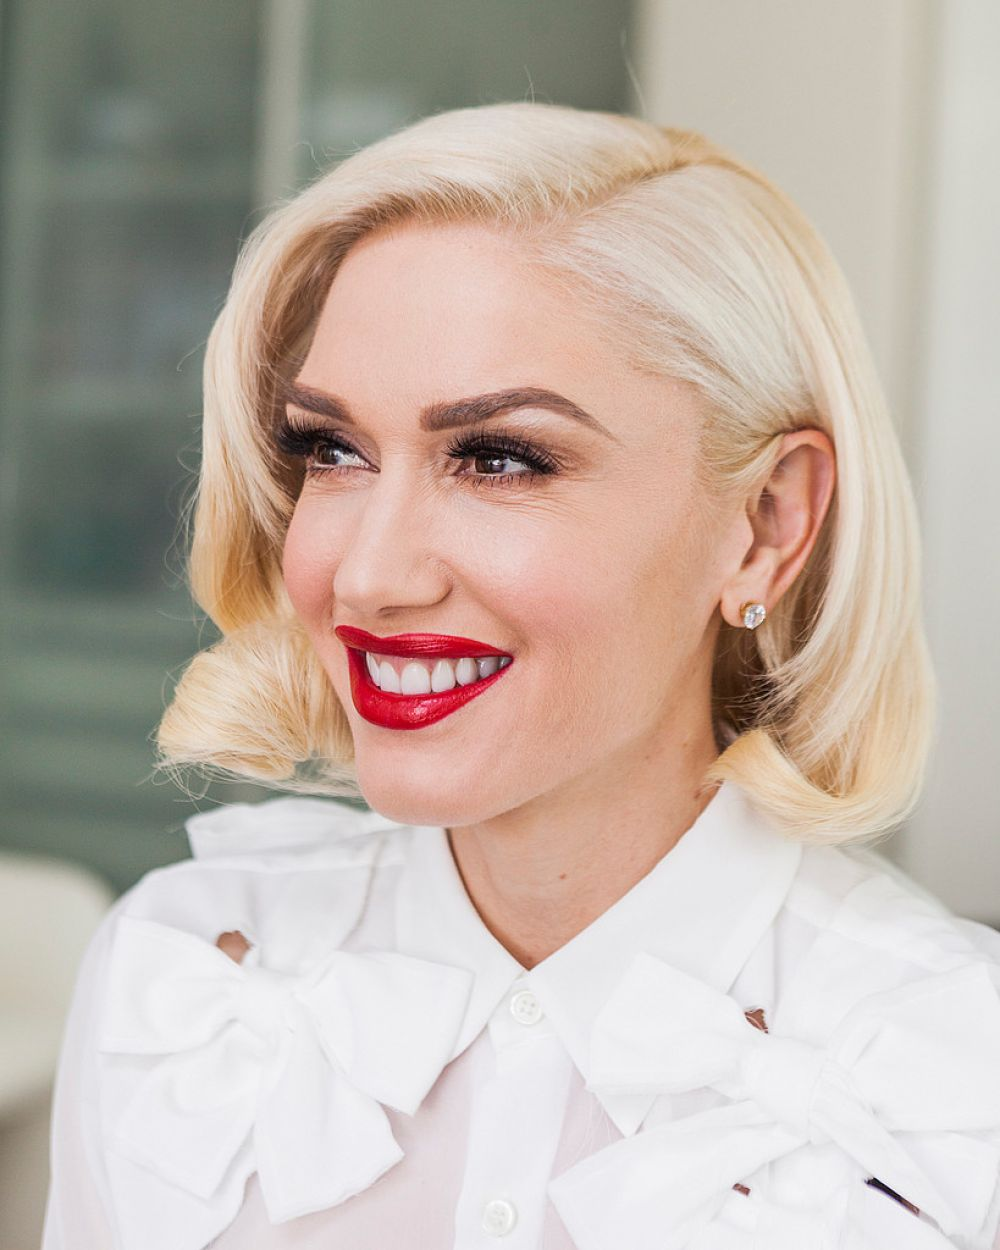 Gwen Stefani At Emily Berl Photoshoot For Ny Times March